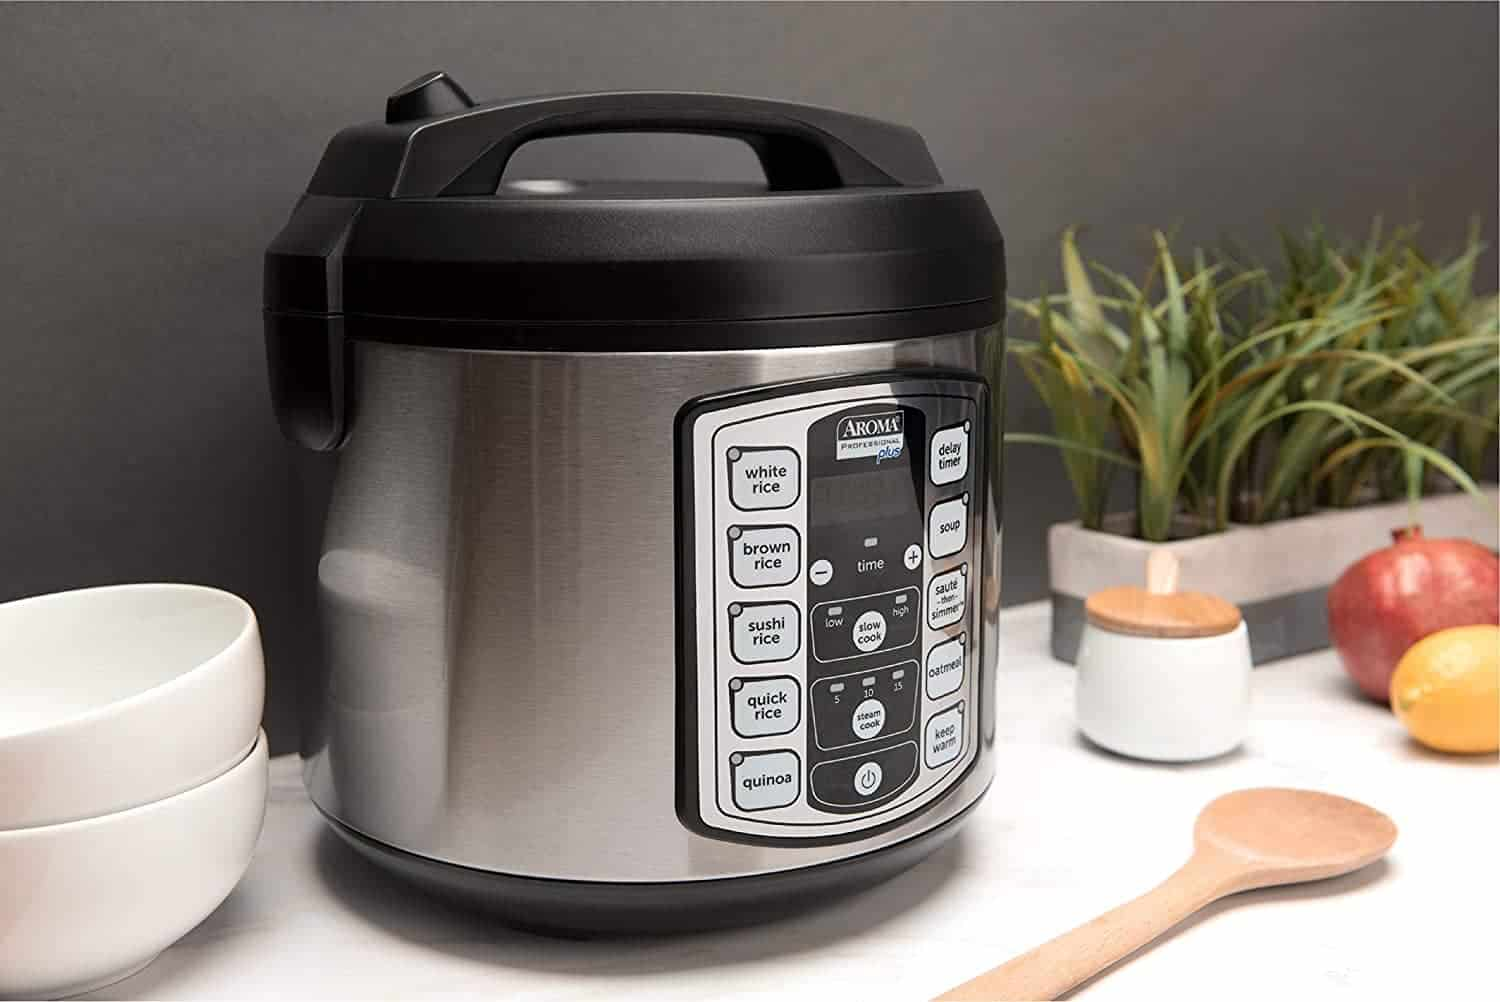 Rice cooker on a counter with utensils